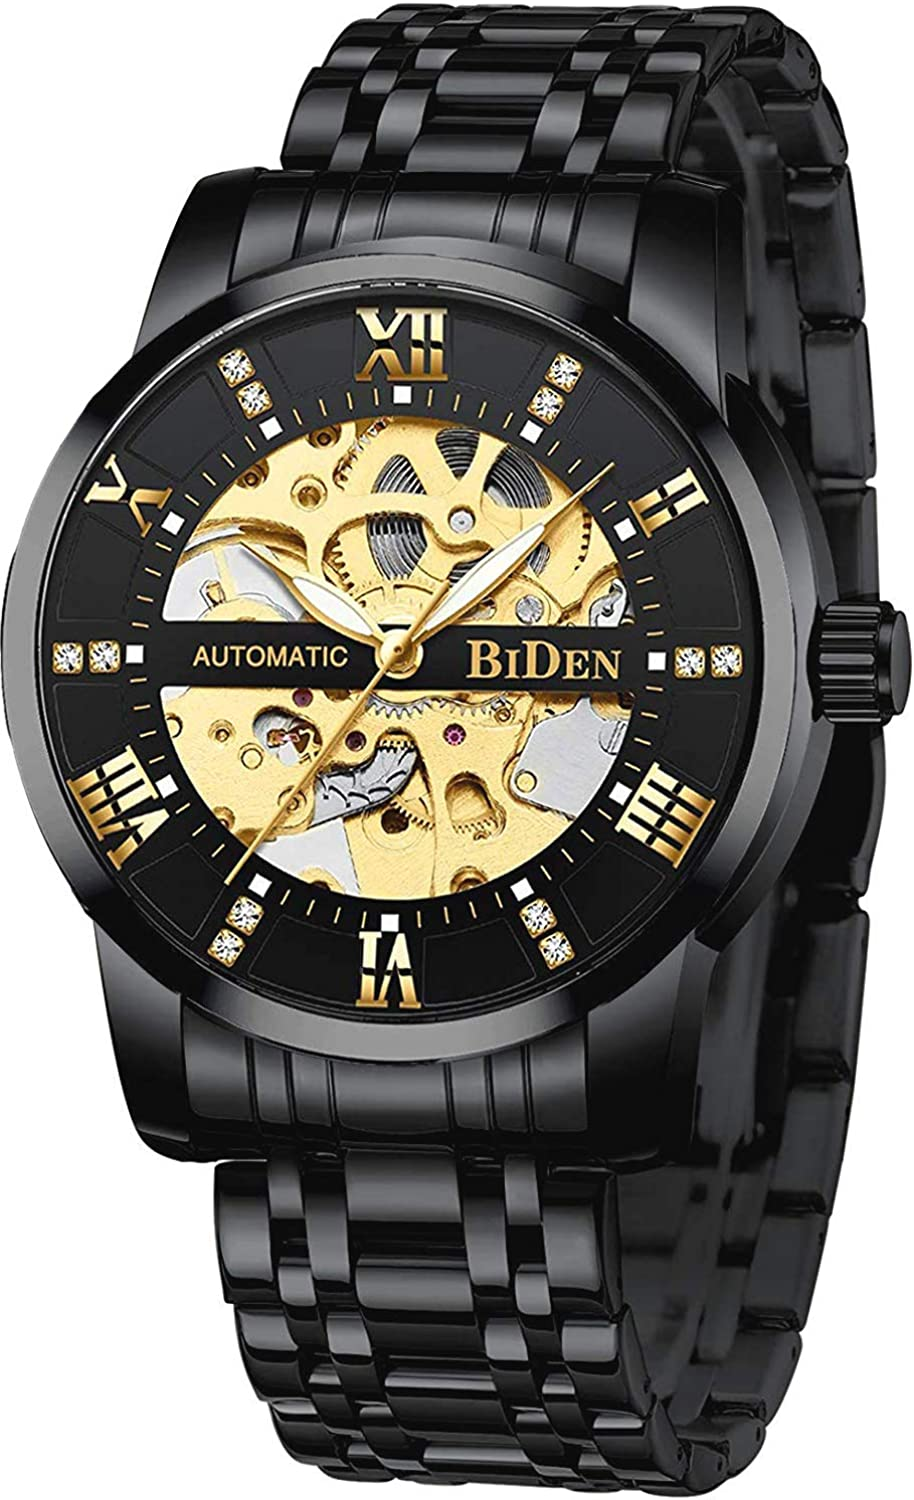 Mens Watches Mechanical Automatic Self-Winding Stainless Steel Skeleton Luxury Waterproof Diamond Dial Wrist Watches for Men